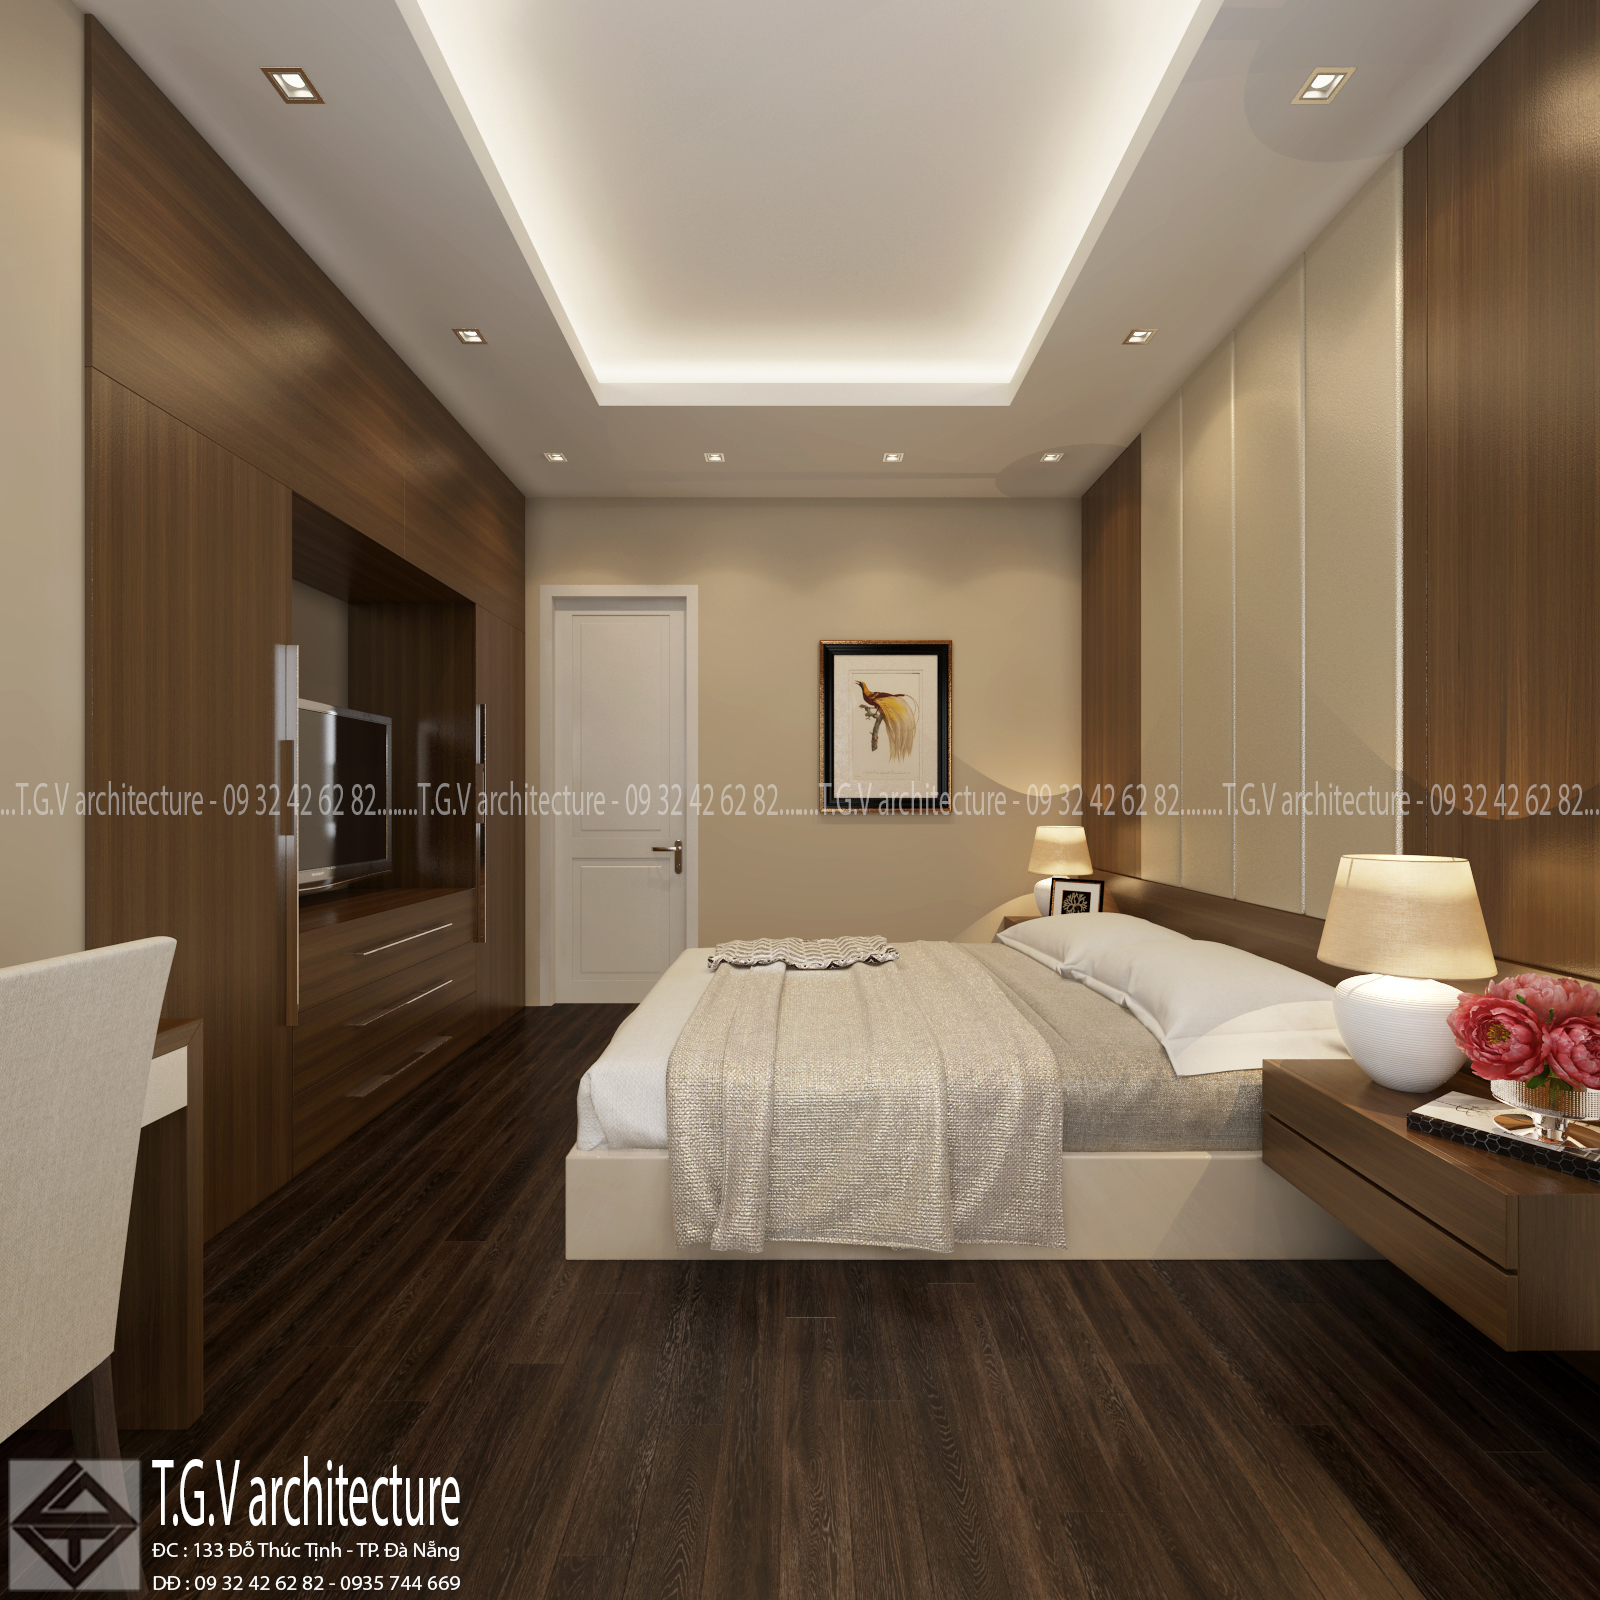 Bedroom_03_View_01